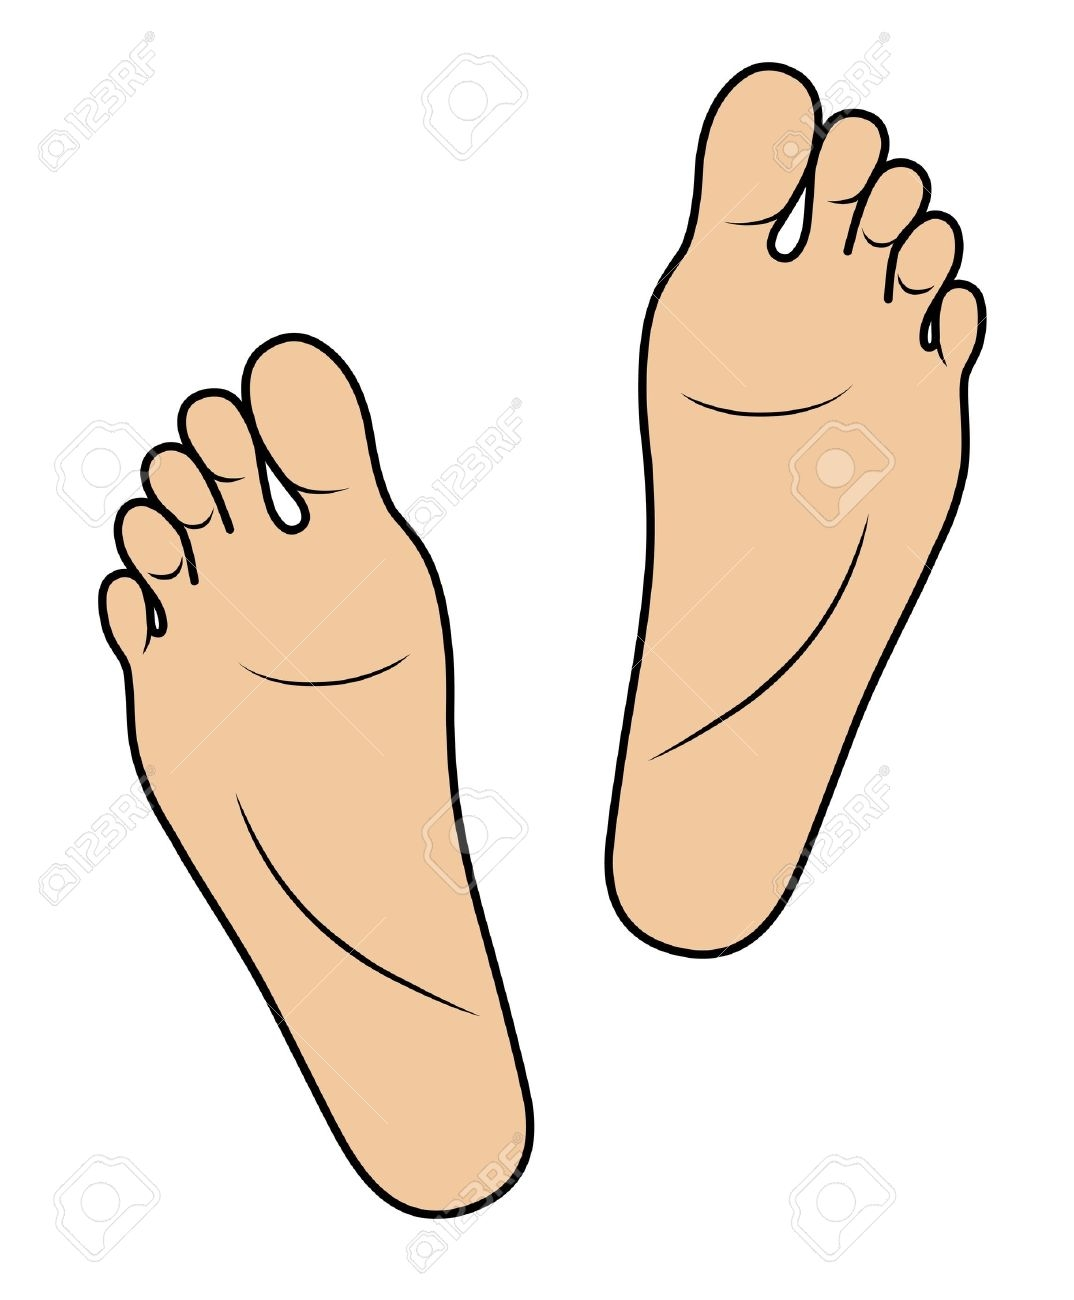 Soles clipart png freeuse library Feet clipart sole foot, Feet sole foot Transparent FREE for ... png freeuse library